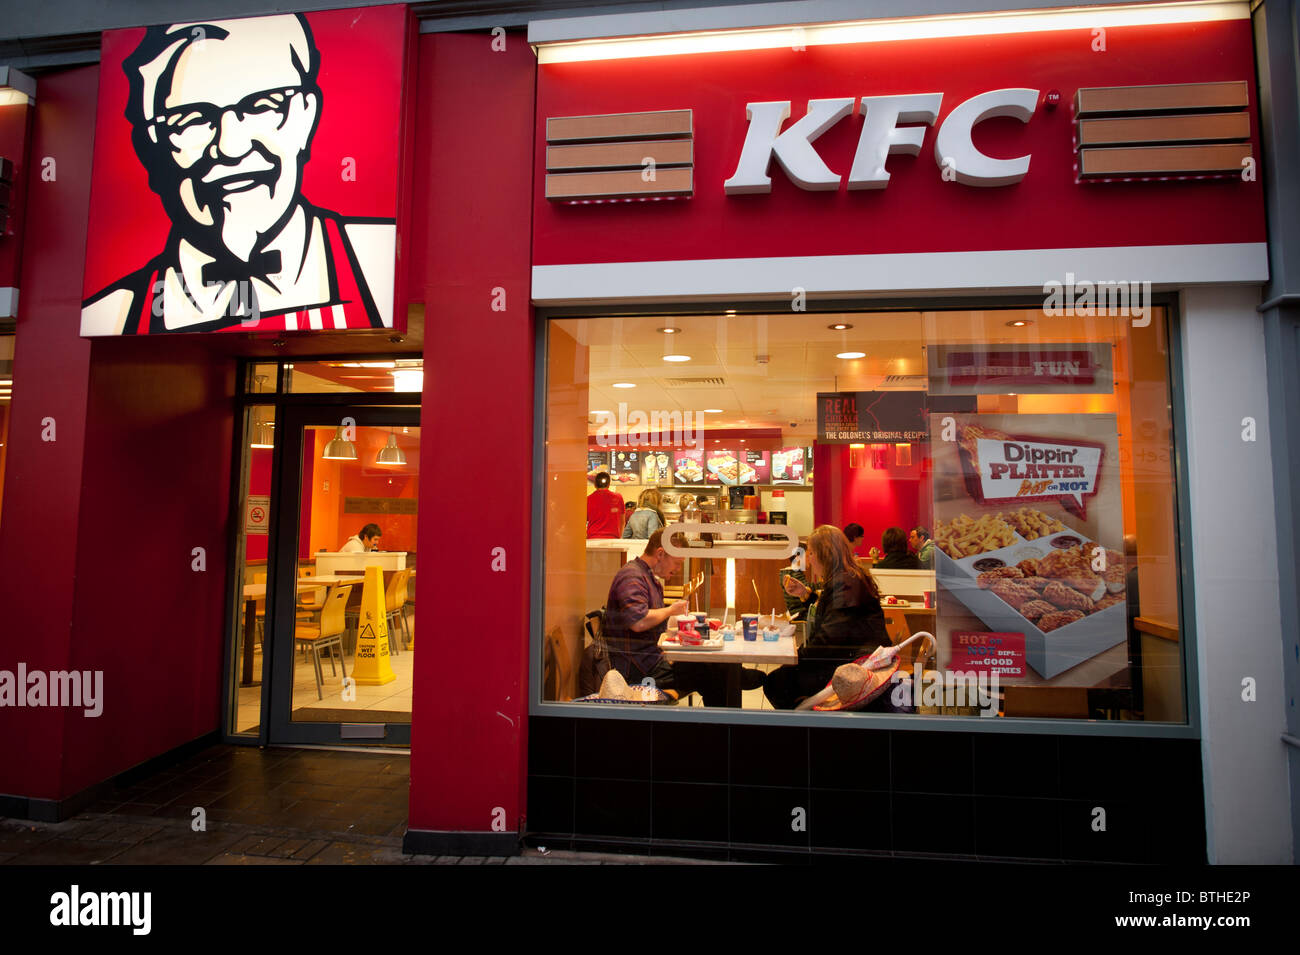 Exterior, night, people eating in a branch of KFC, kentucky fried chicken, fast food restaurant, UK - Stock Image